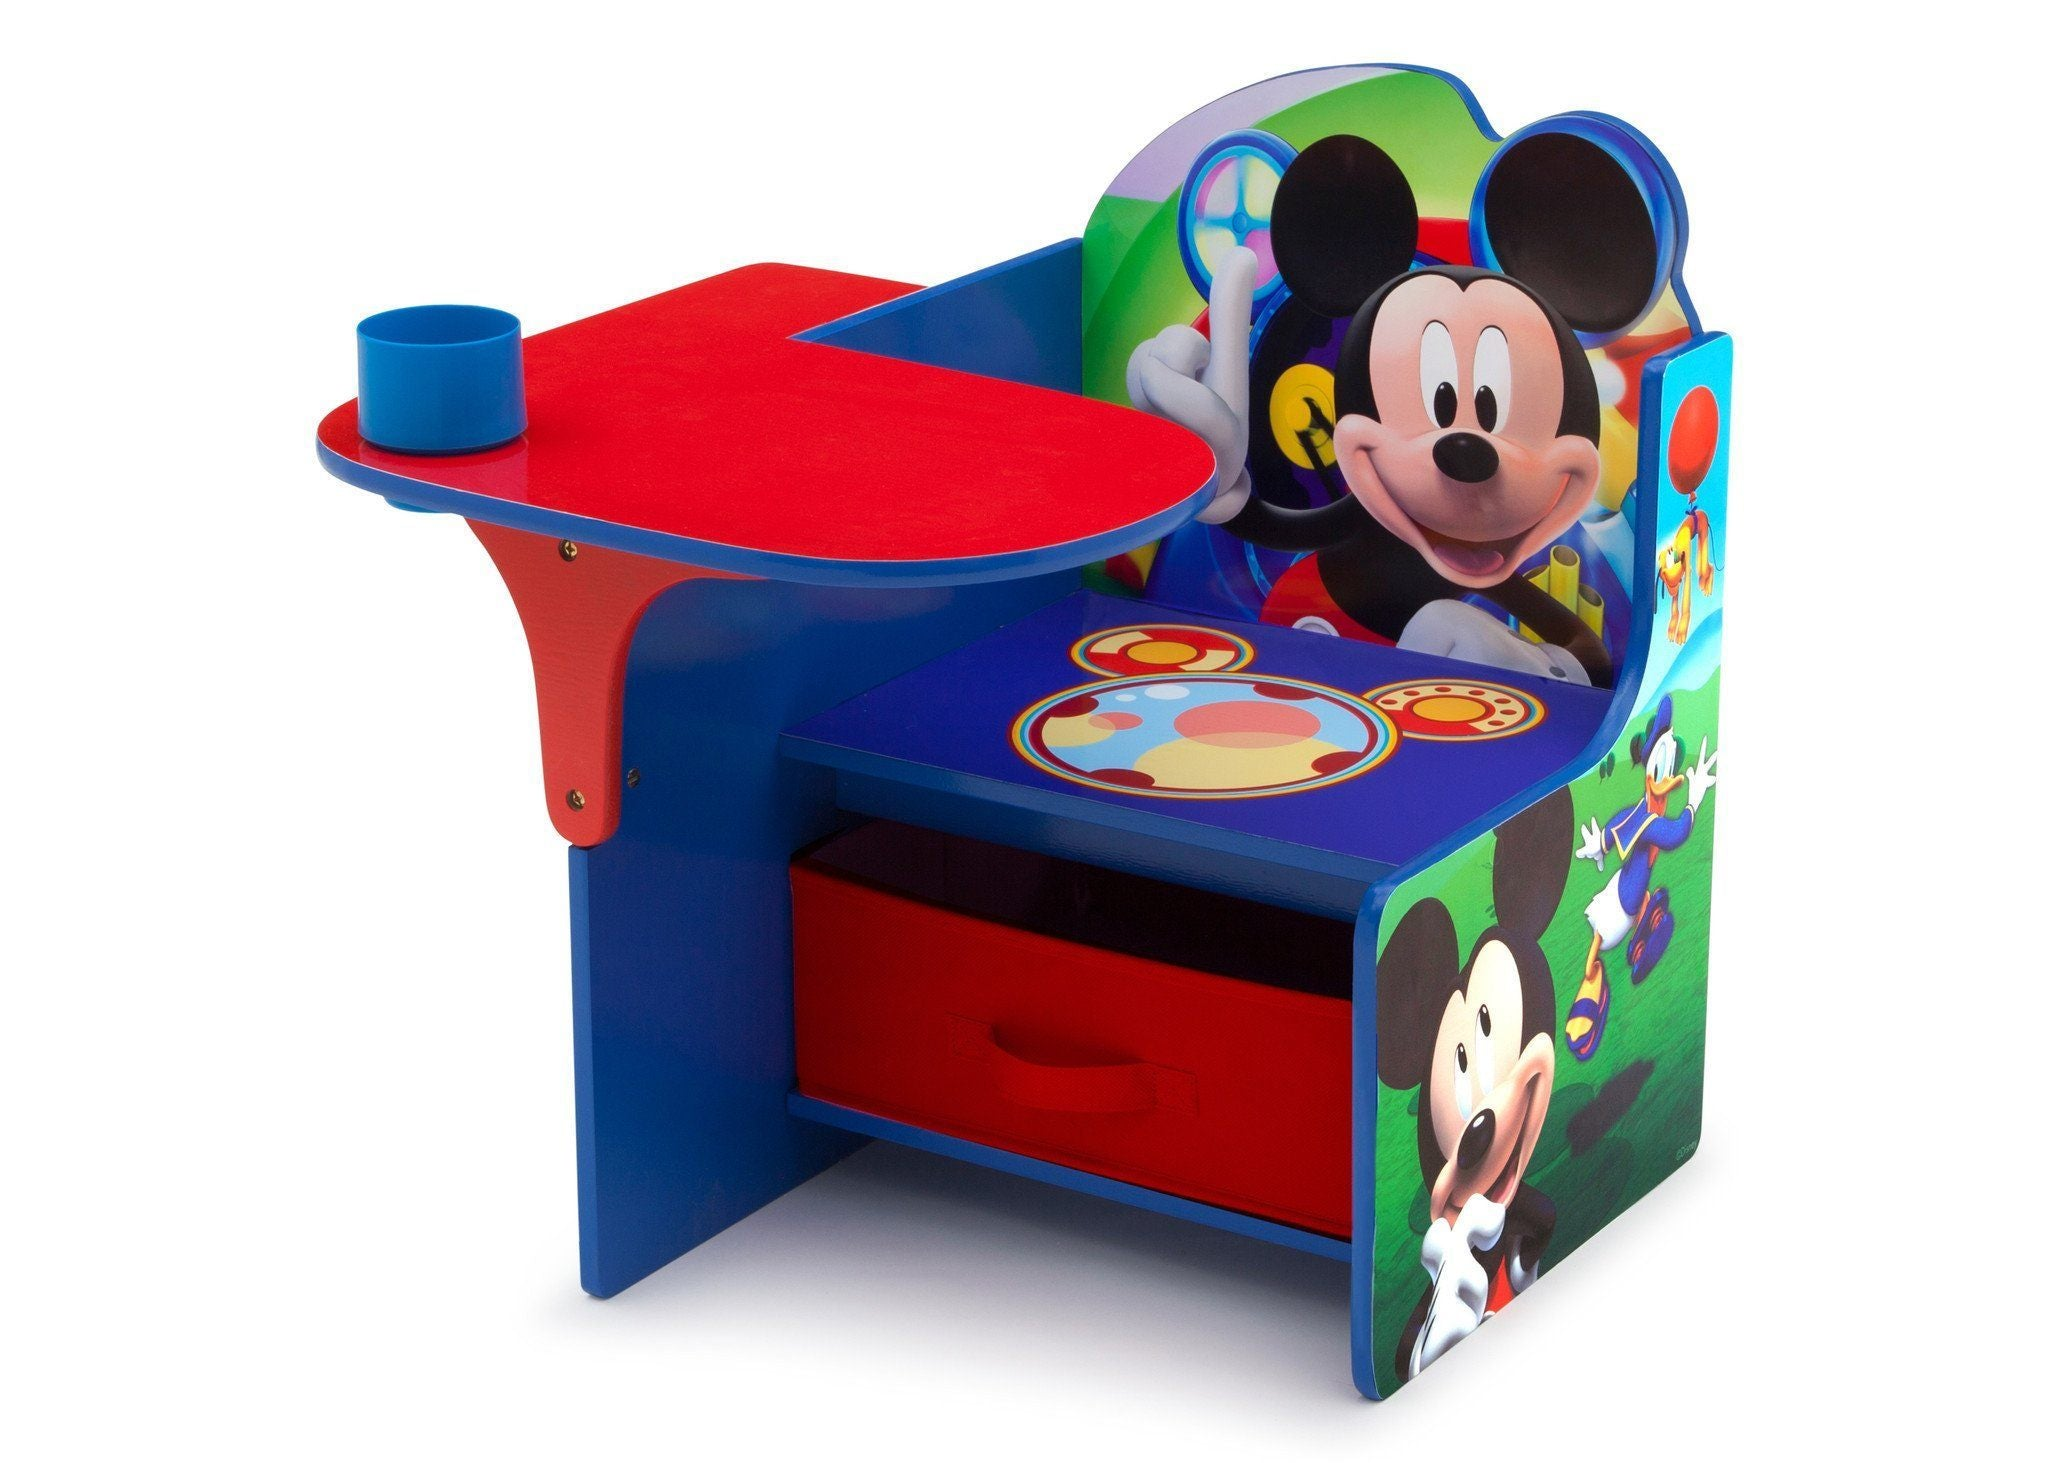 Genial ... Delta Children Mickey Mouse Chair Desk With Storage Bin, Left View A2a  ...